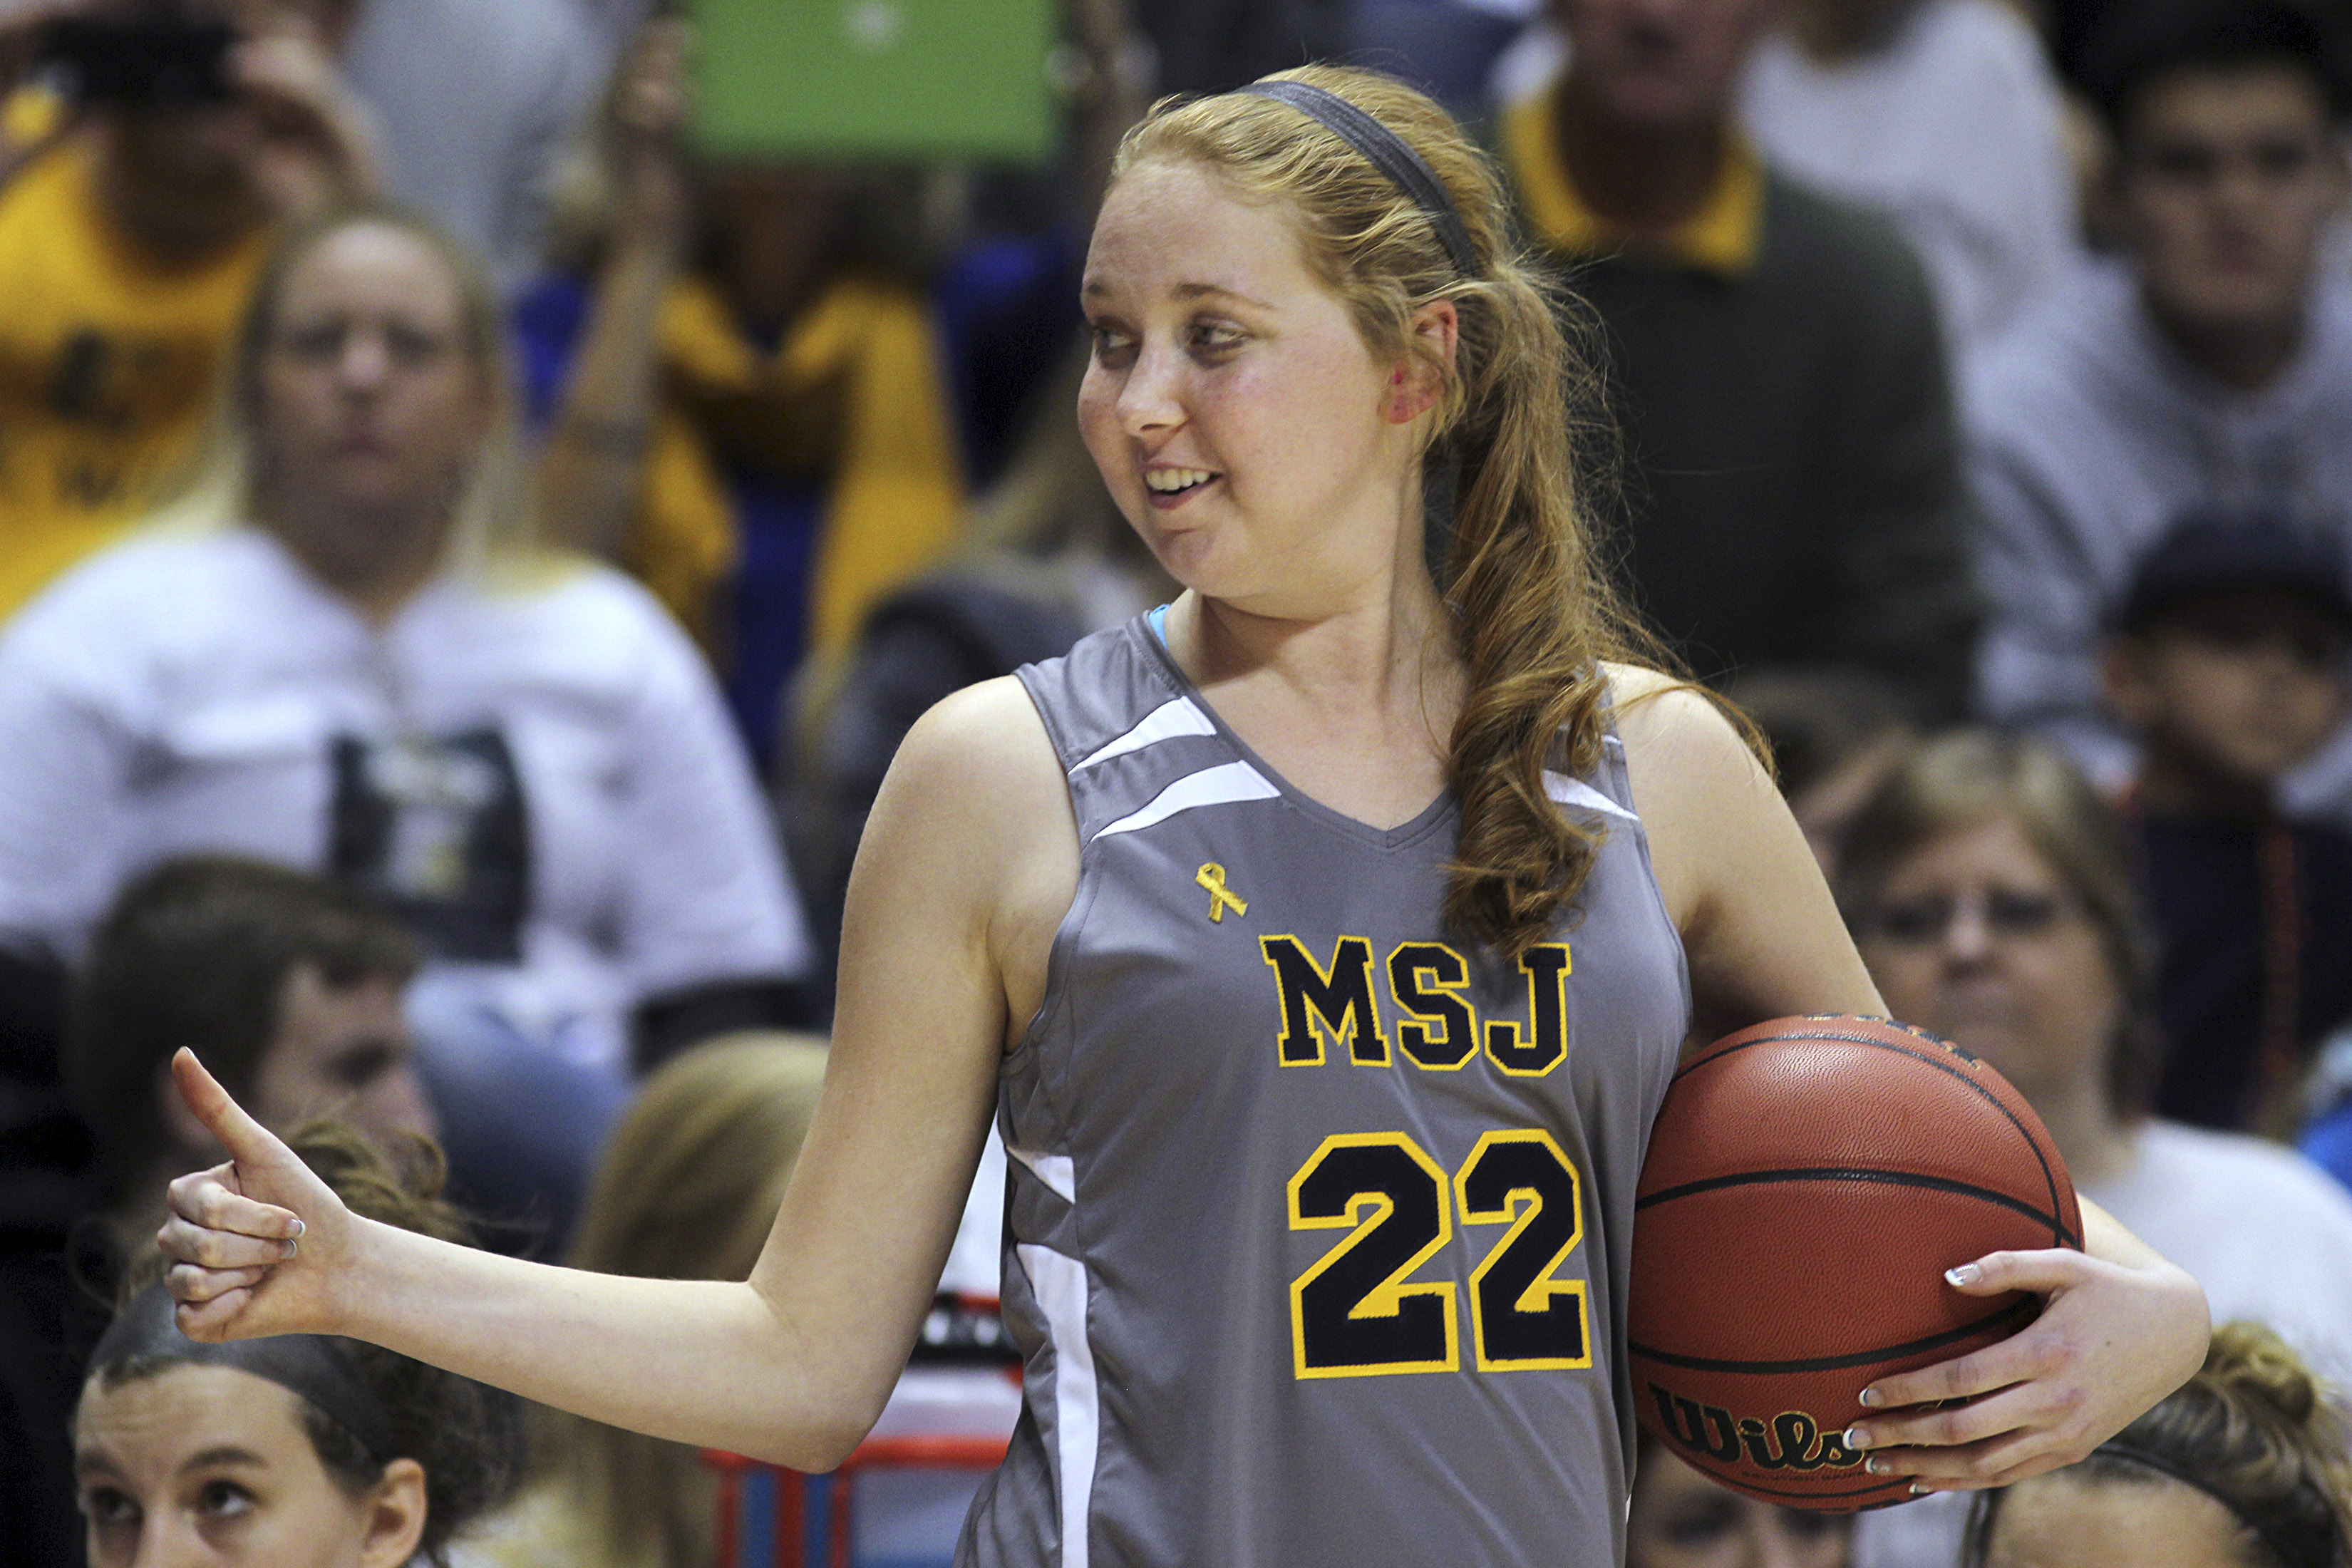 FILE - In this Nov. 2, 2014, file photo, Mount St. Joseph's Lauren Hill gives a thumbs-up as she holds the game ball during her first NCAA college basketball game, against Hiram University, at Xavier University in Cincinnati. Hill will be honored at the E